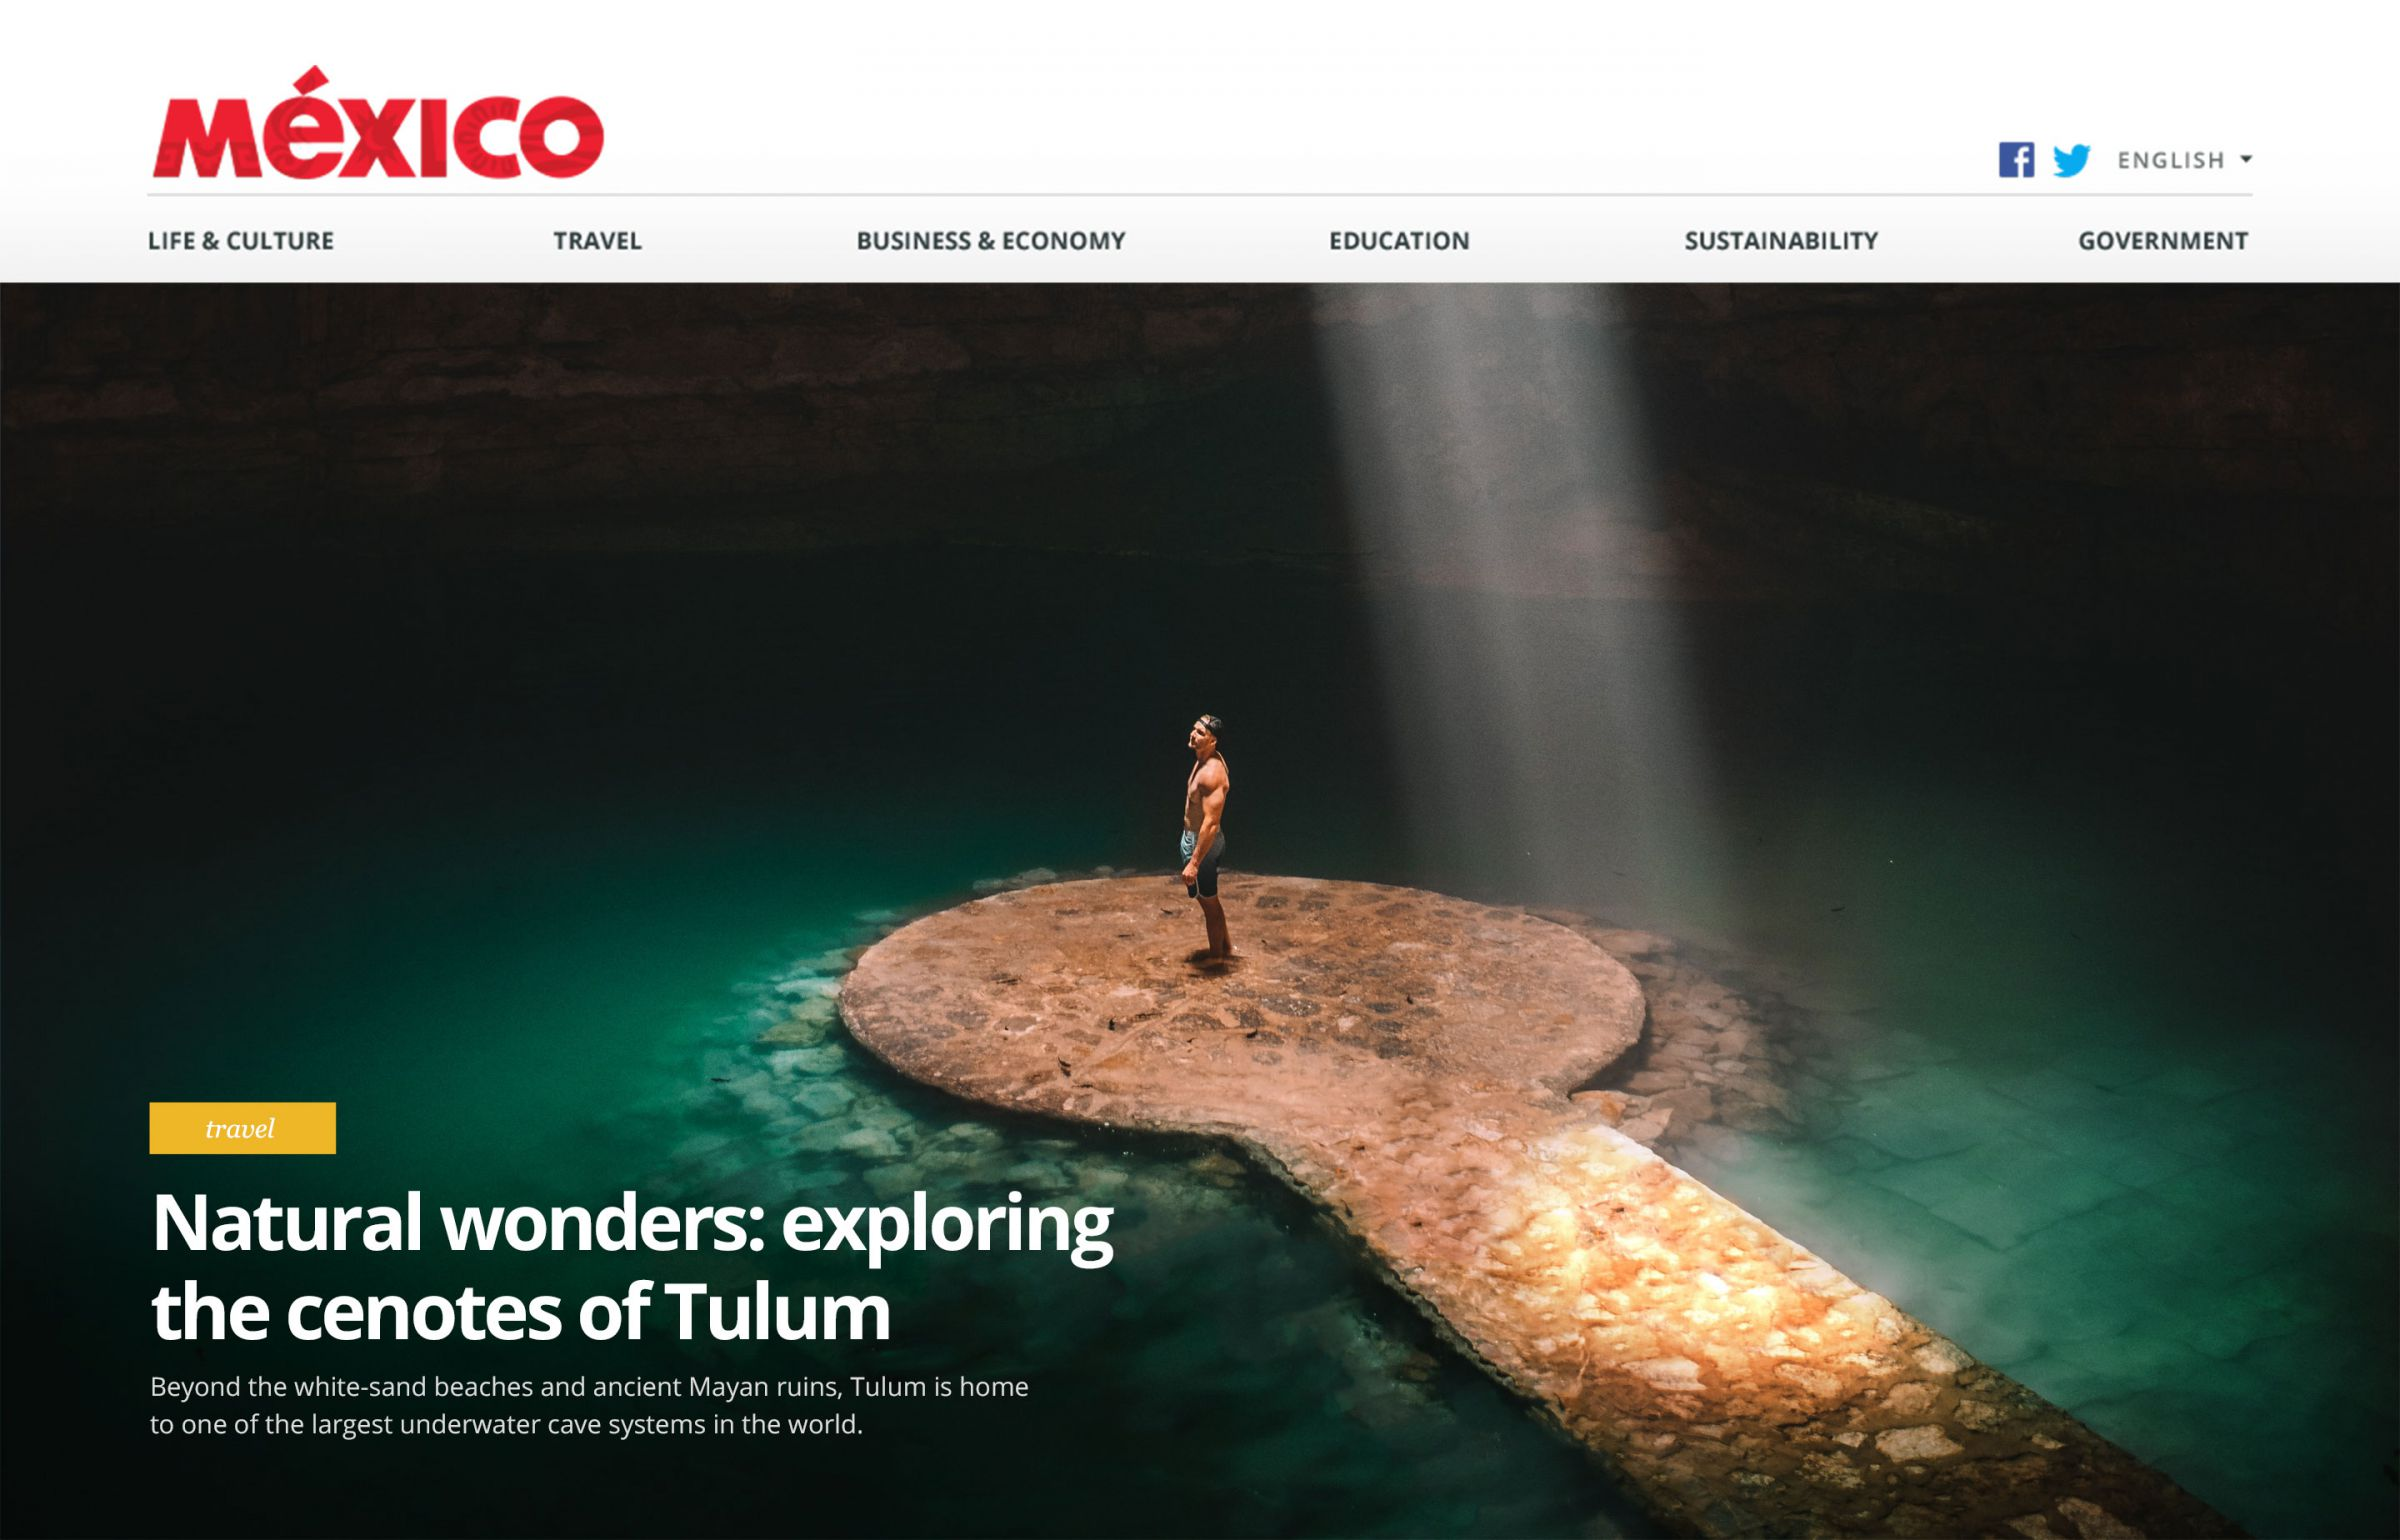 Mexico.com Home Page featured image